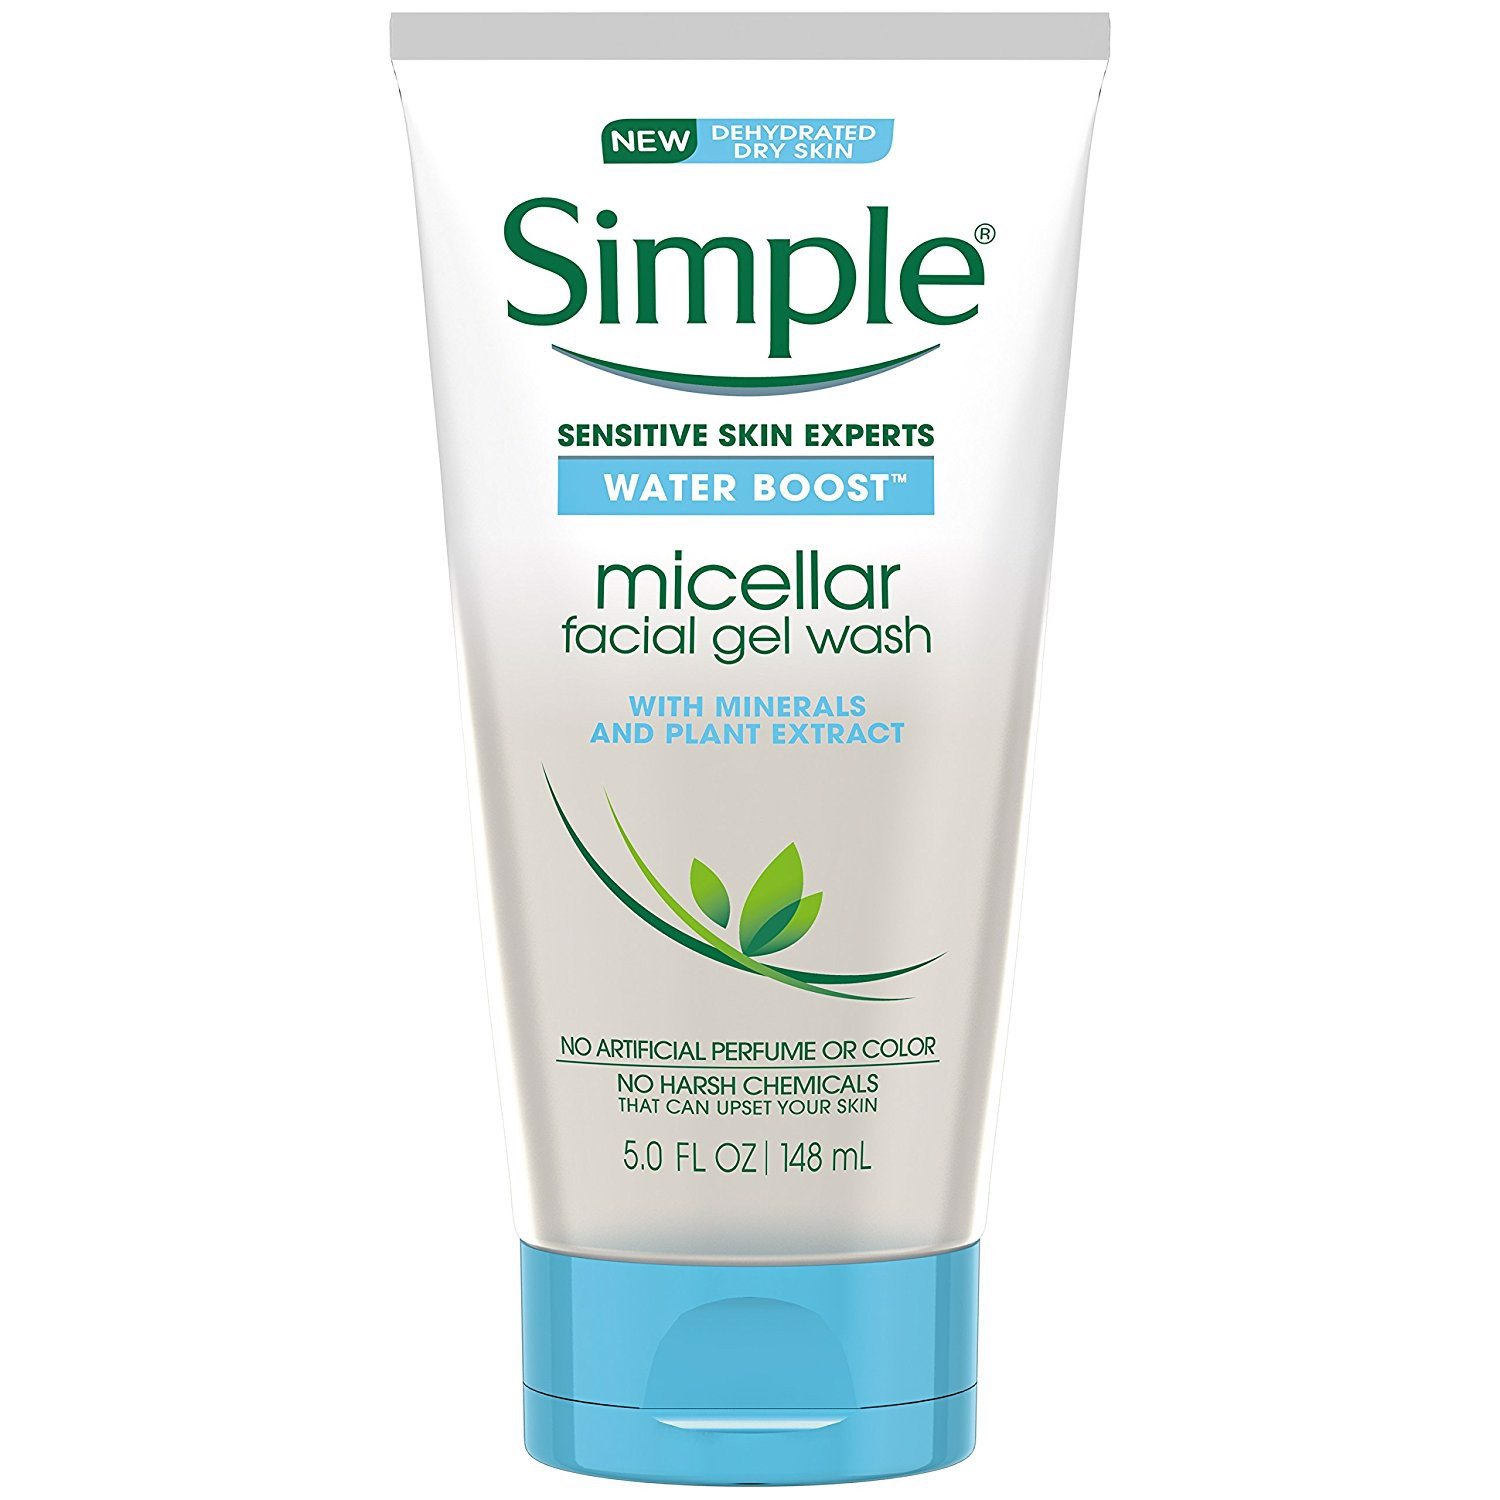 Sữa rửa mặt Simple Sensitive Skin Experts Water Boost With Minerals And Plant Extract 148ml